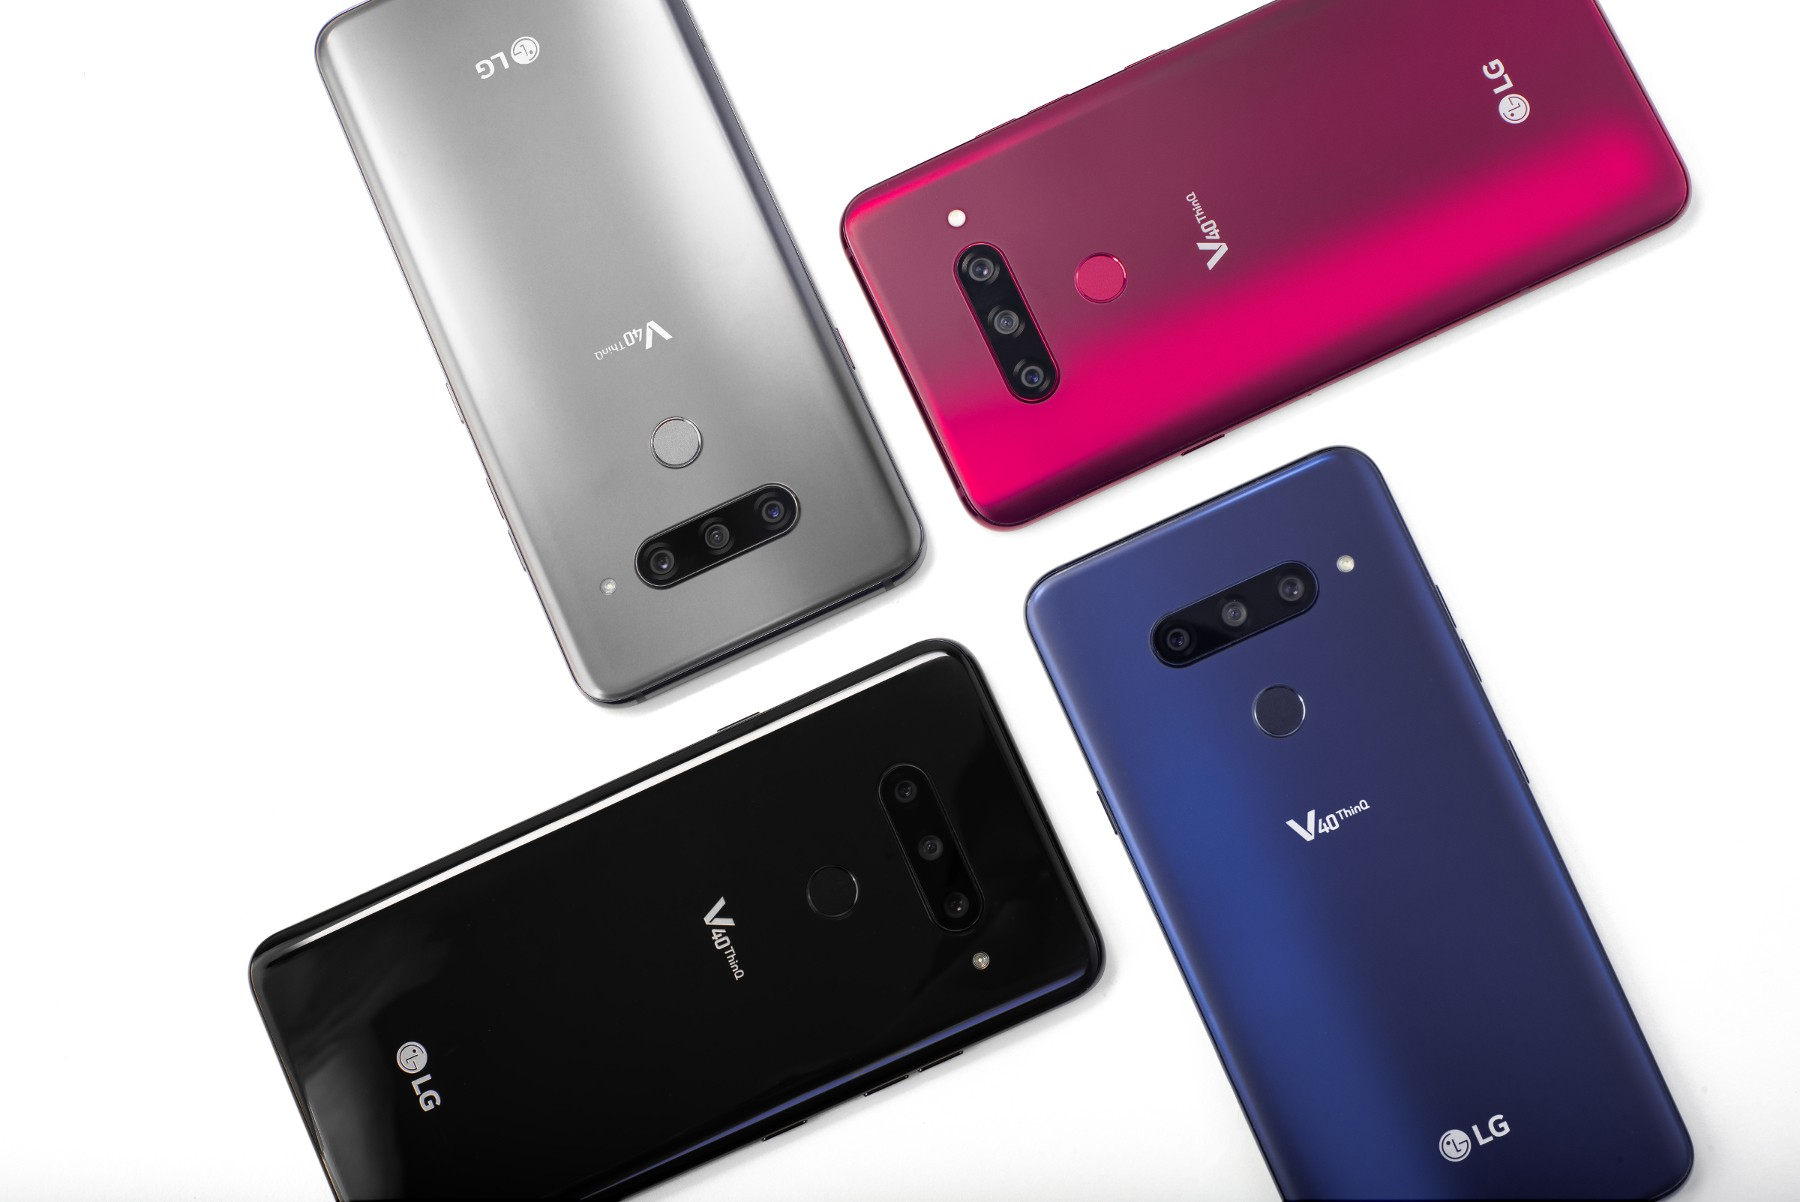 The rear view of the LG V40 ThinQ in New Platinum Gray, New Aurora Black, New Moroccan Blue and Carmine Red, positioned in a fan shape